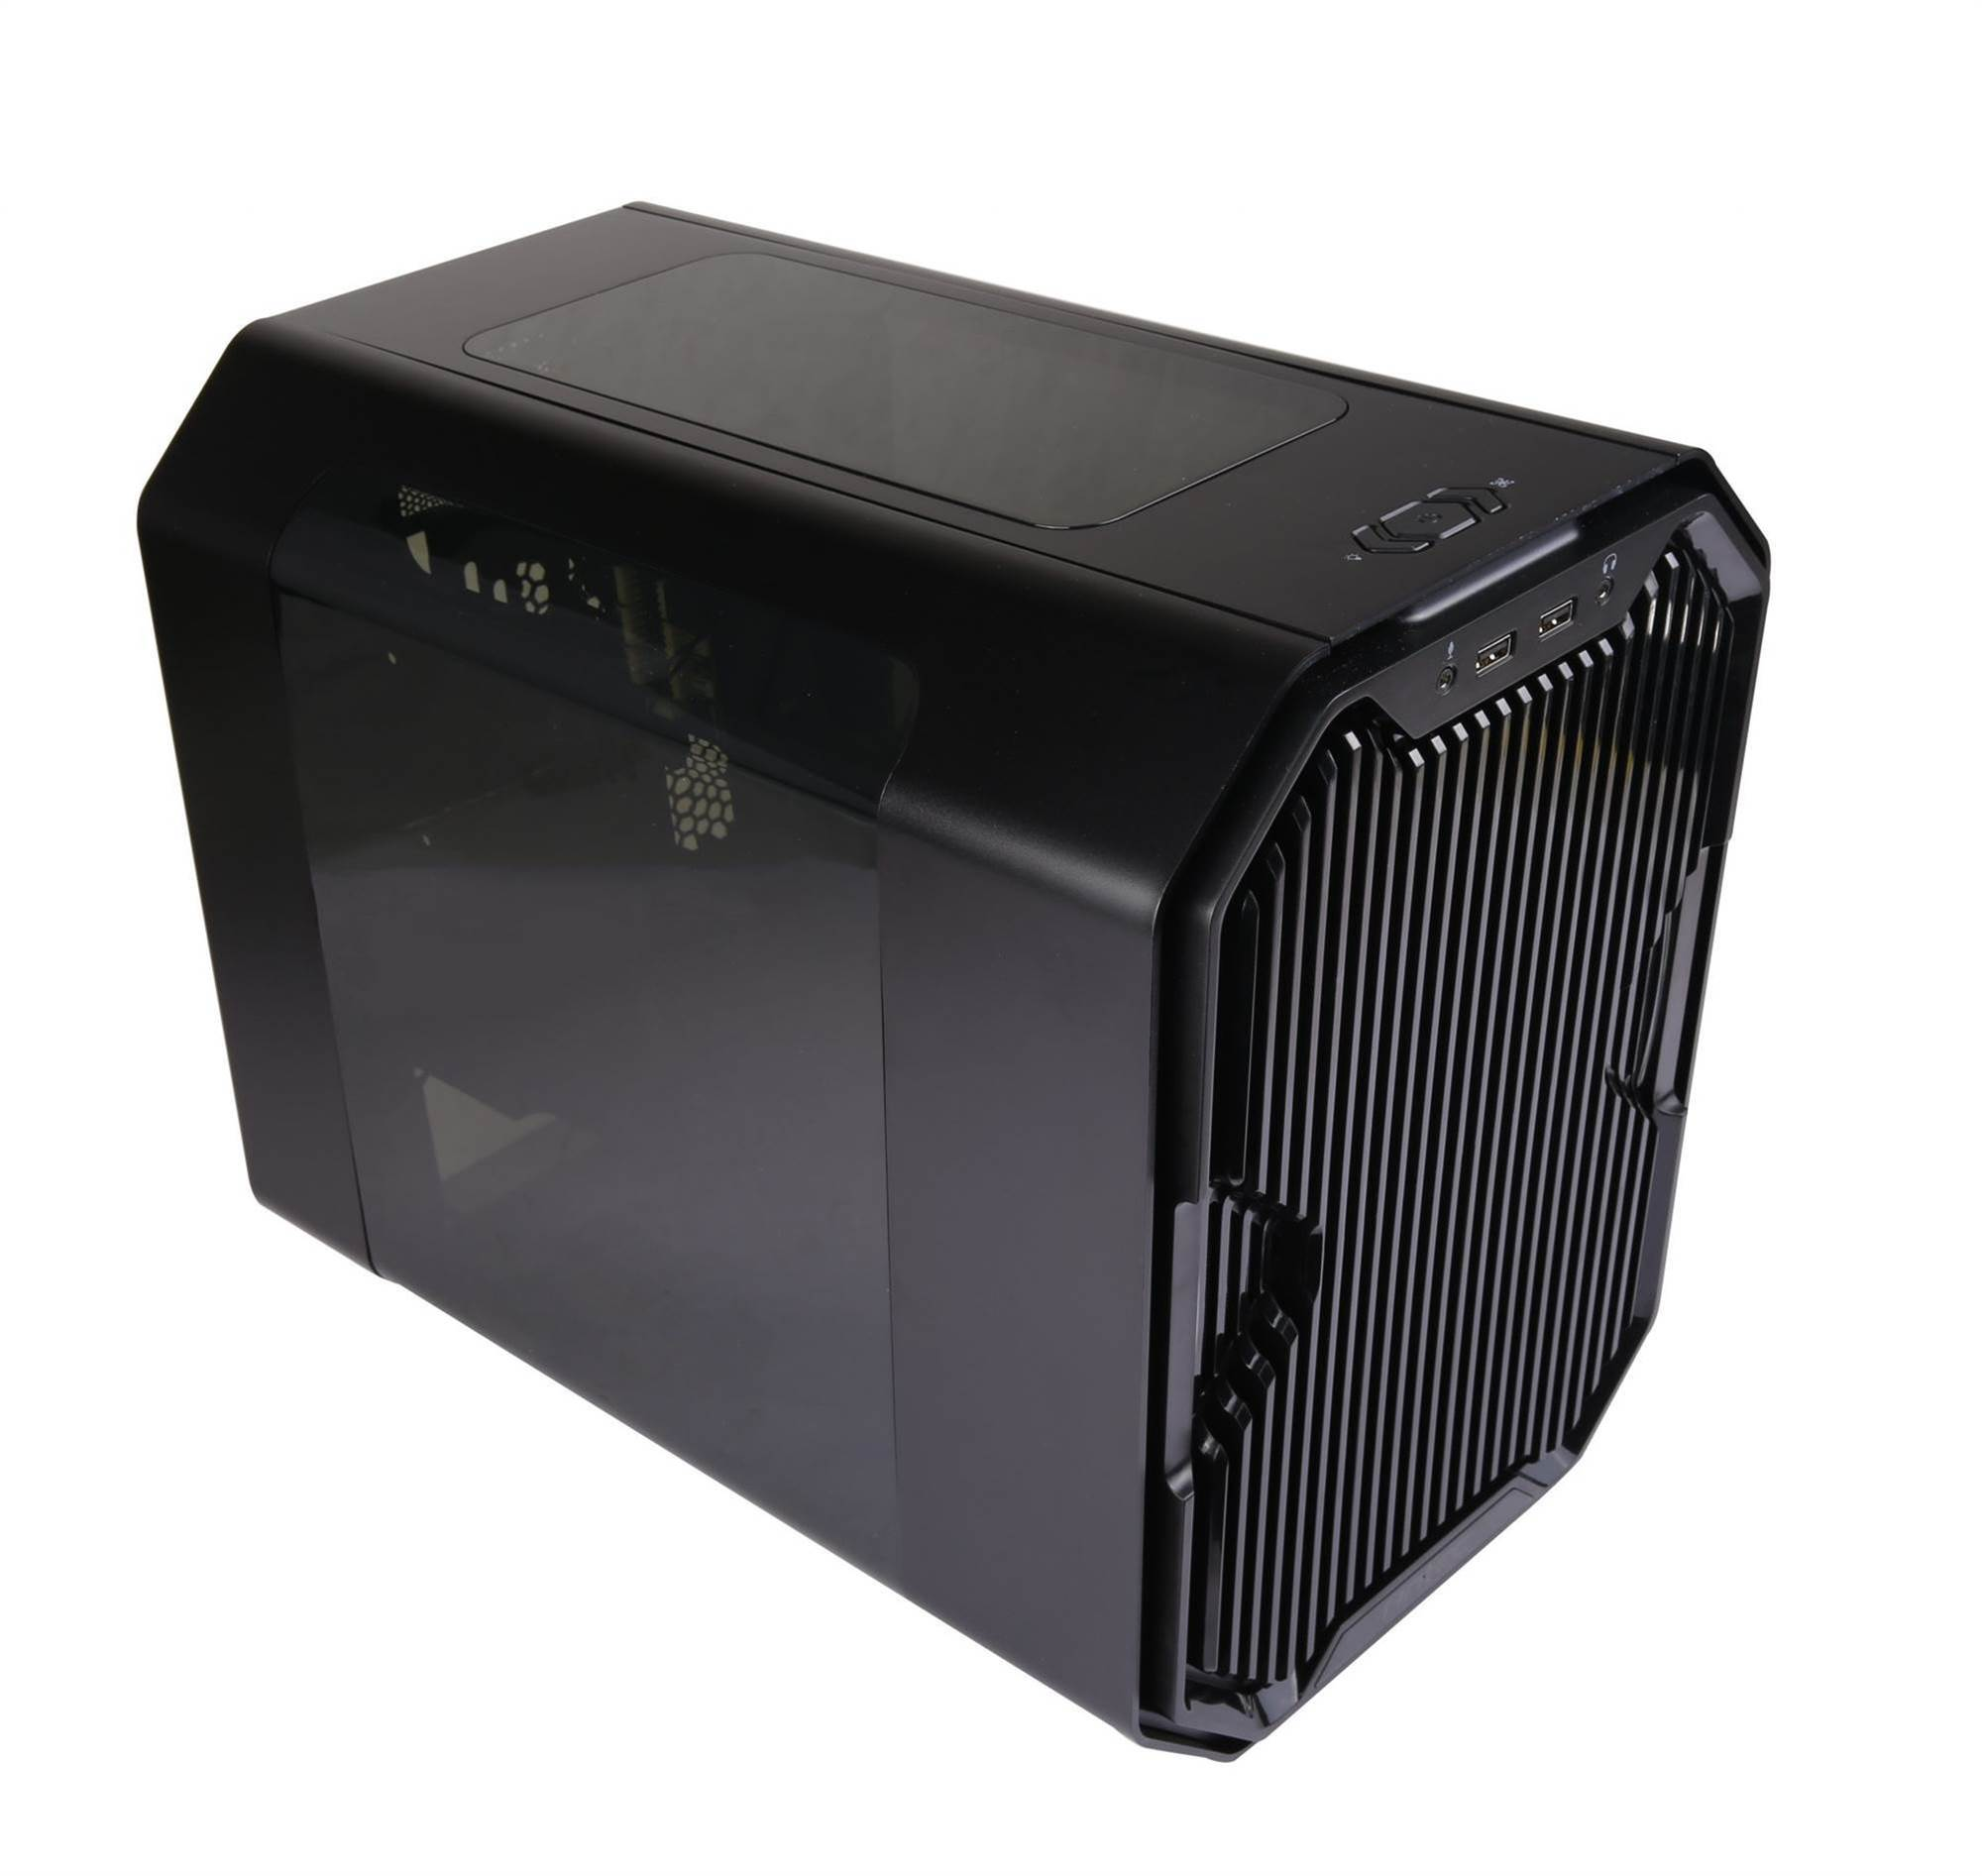 Antec and EK Water Blocks join forces for new Cube PC case